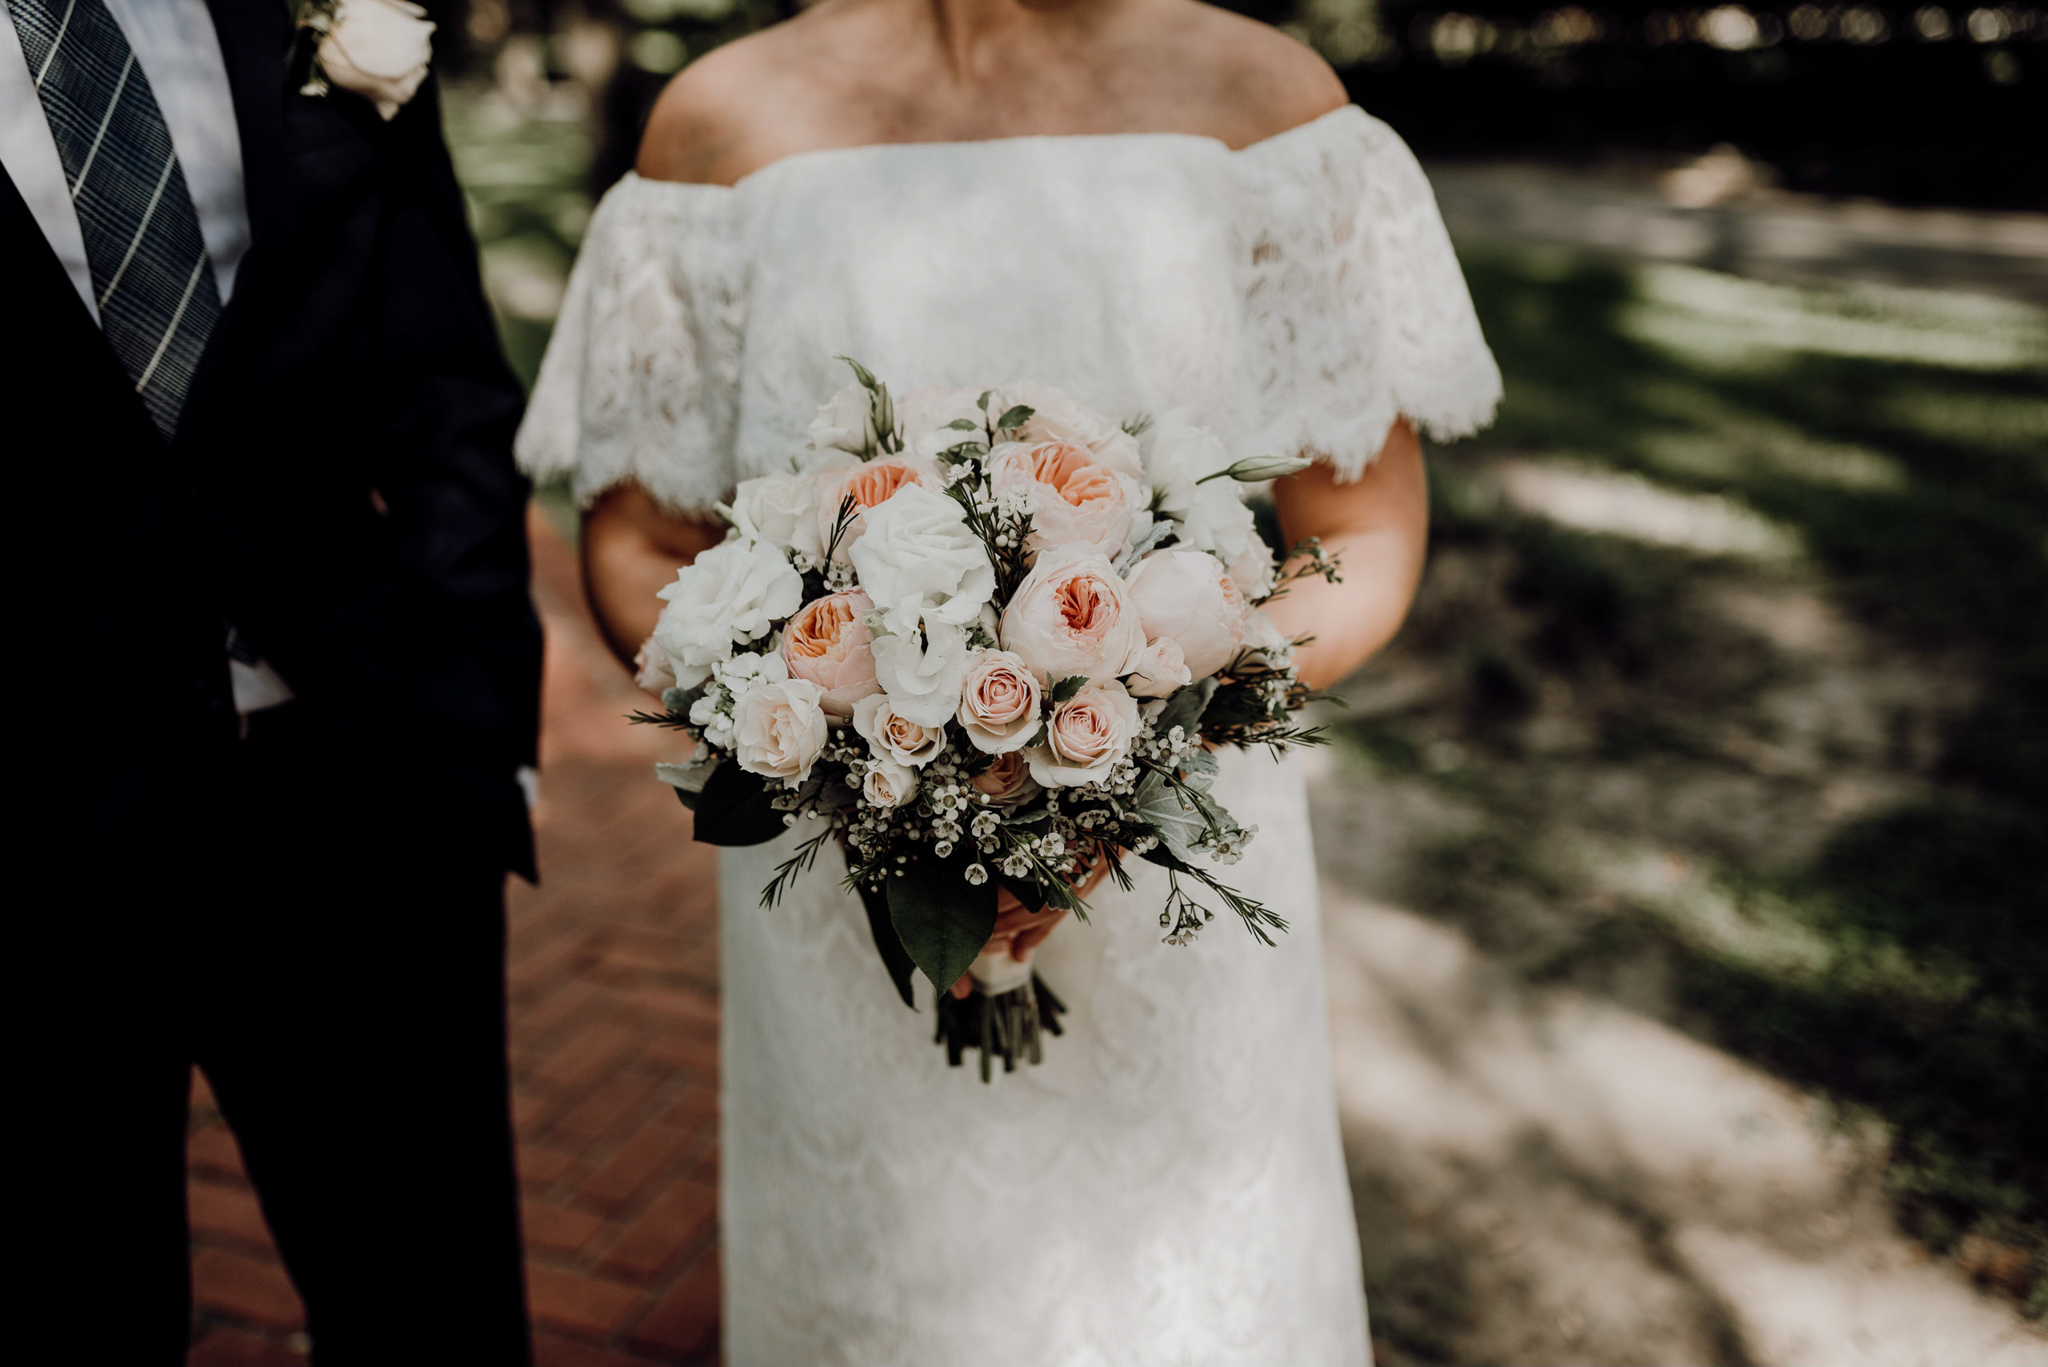 Houston Wedding Photographer-North Blvd Intimate Elopement- Houston Wedding Photographer -Kristen Giles Photography-3.jpg